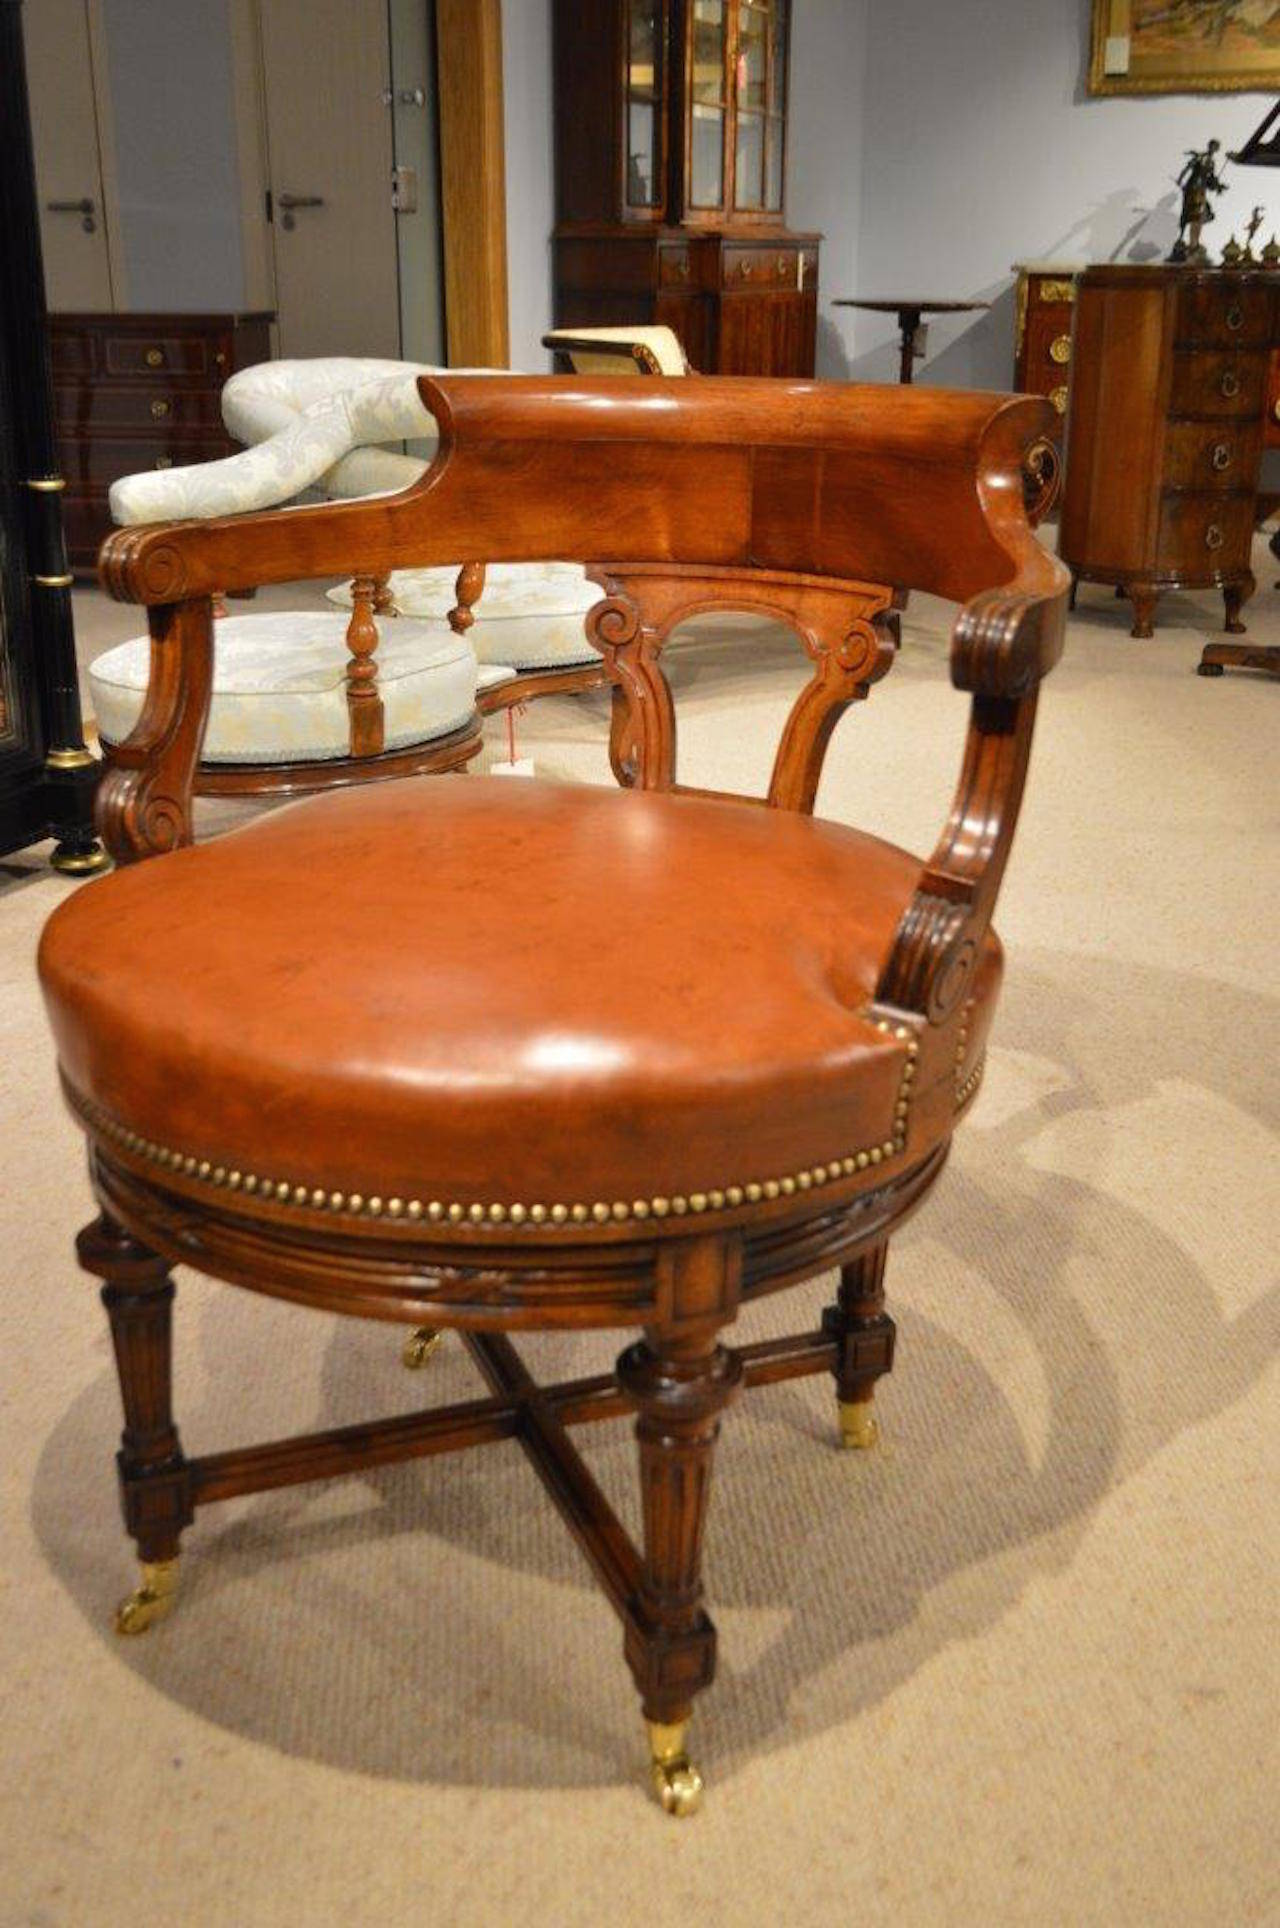 revolving desk chair ostrich beach chairs review walnut and leather late victorian period antique